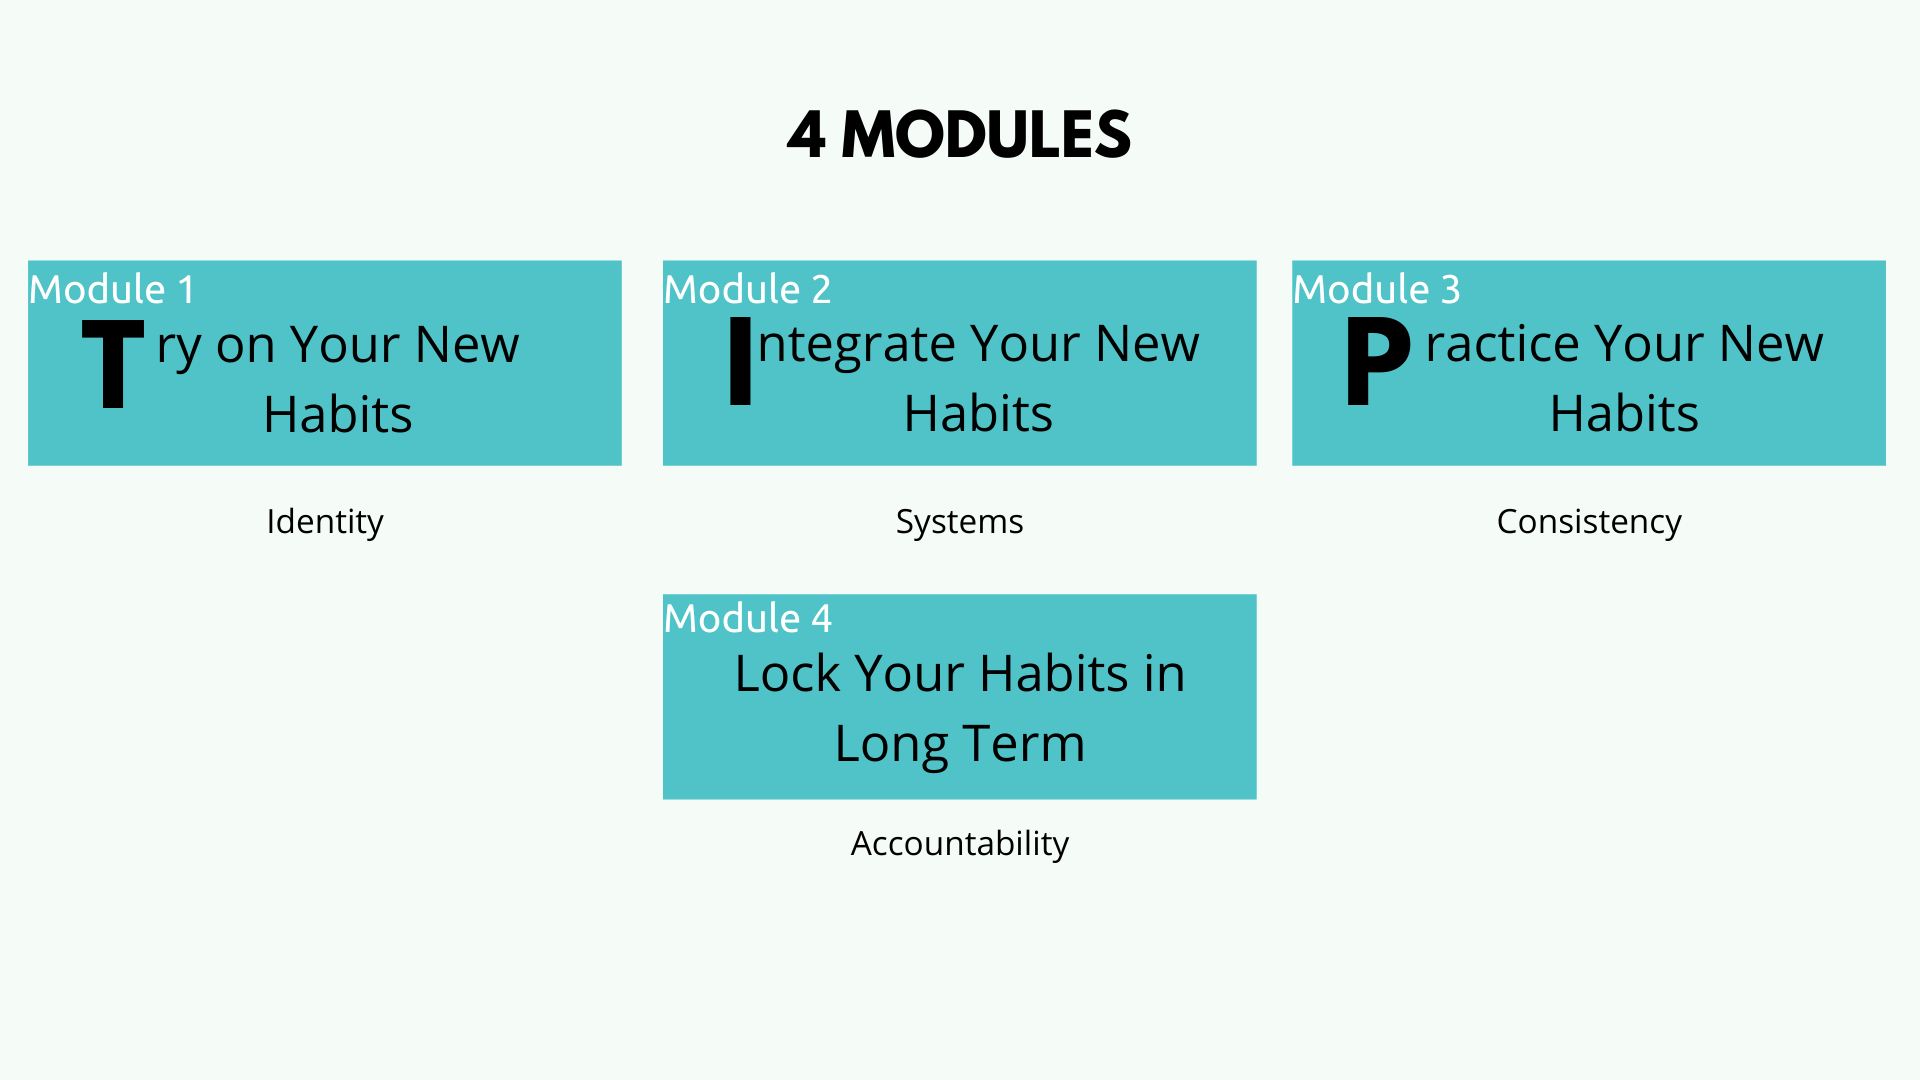 4 modules for Jumpstart Your Habits